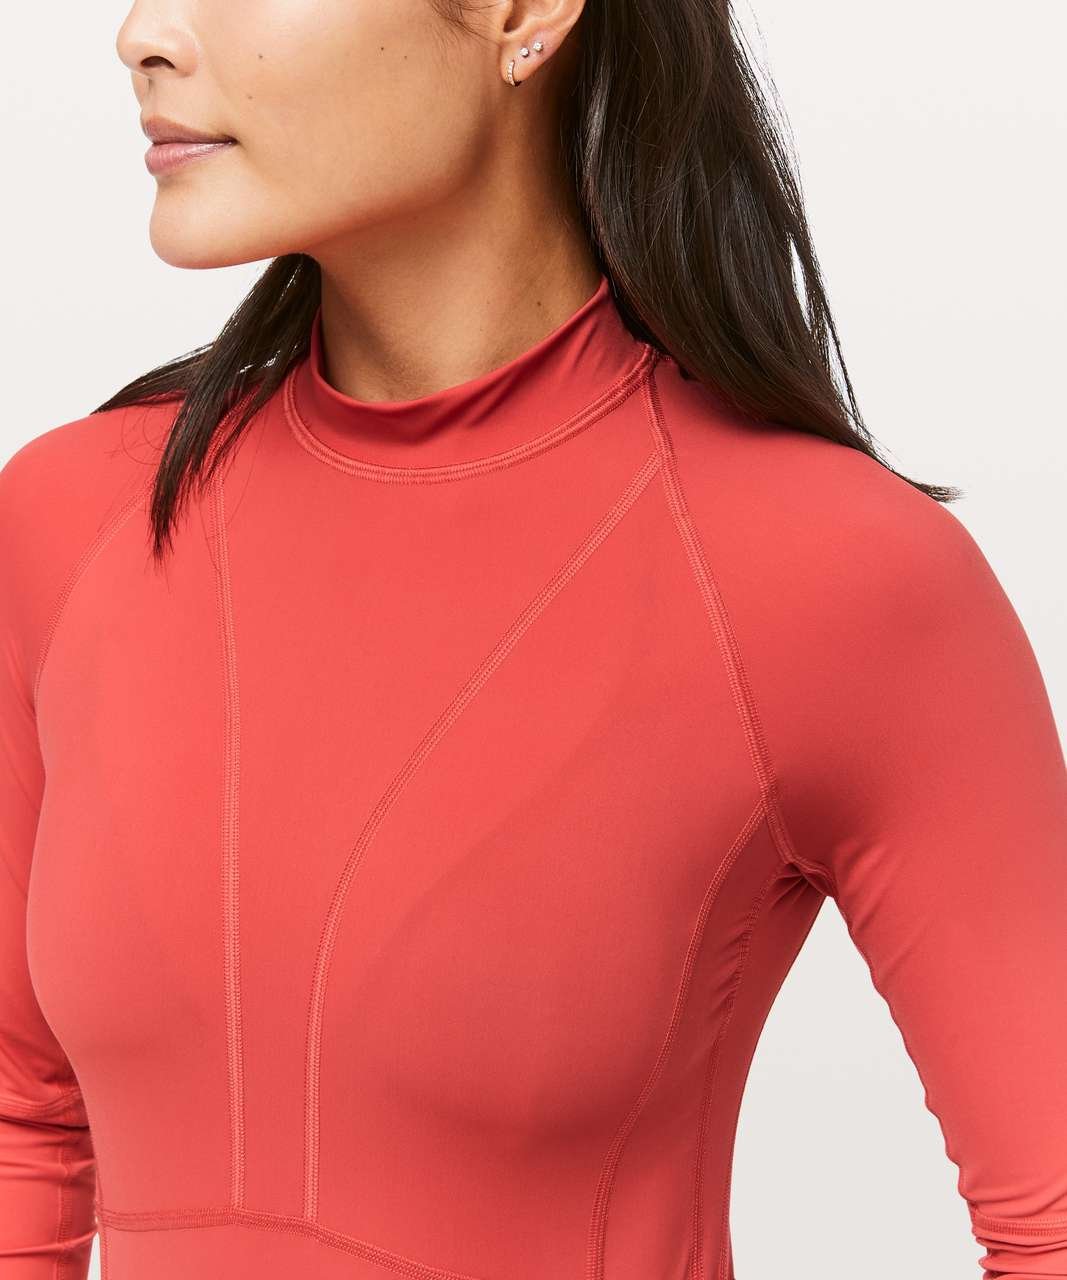 Lululemon Beach Break Rashguard - Poppy Coral